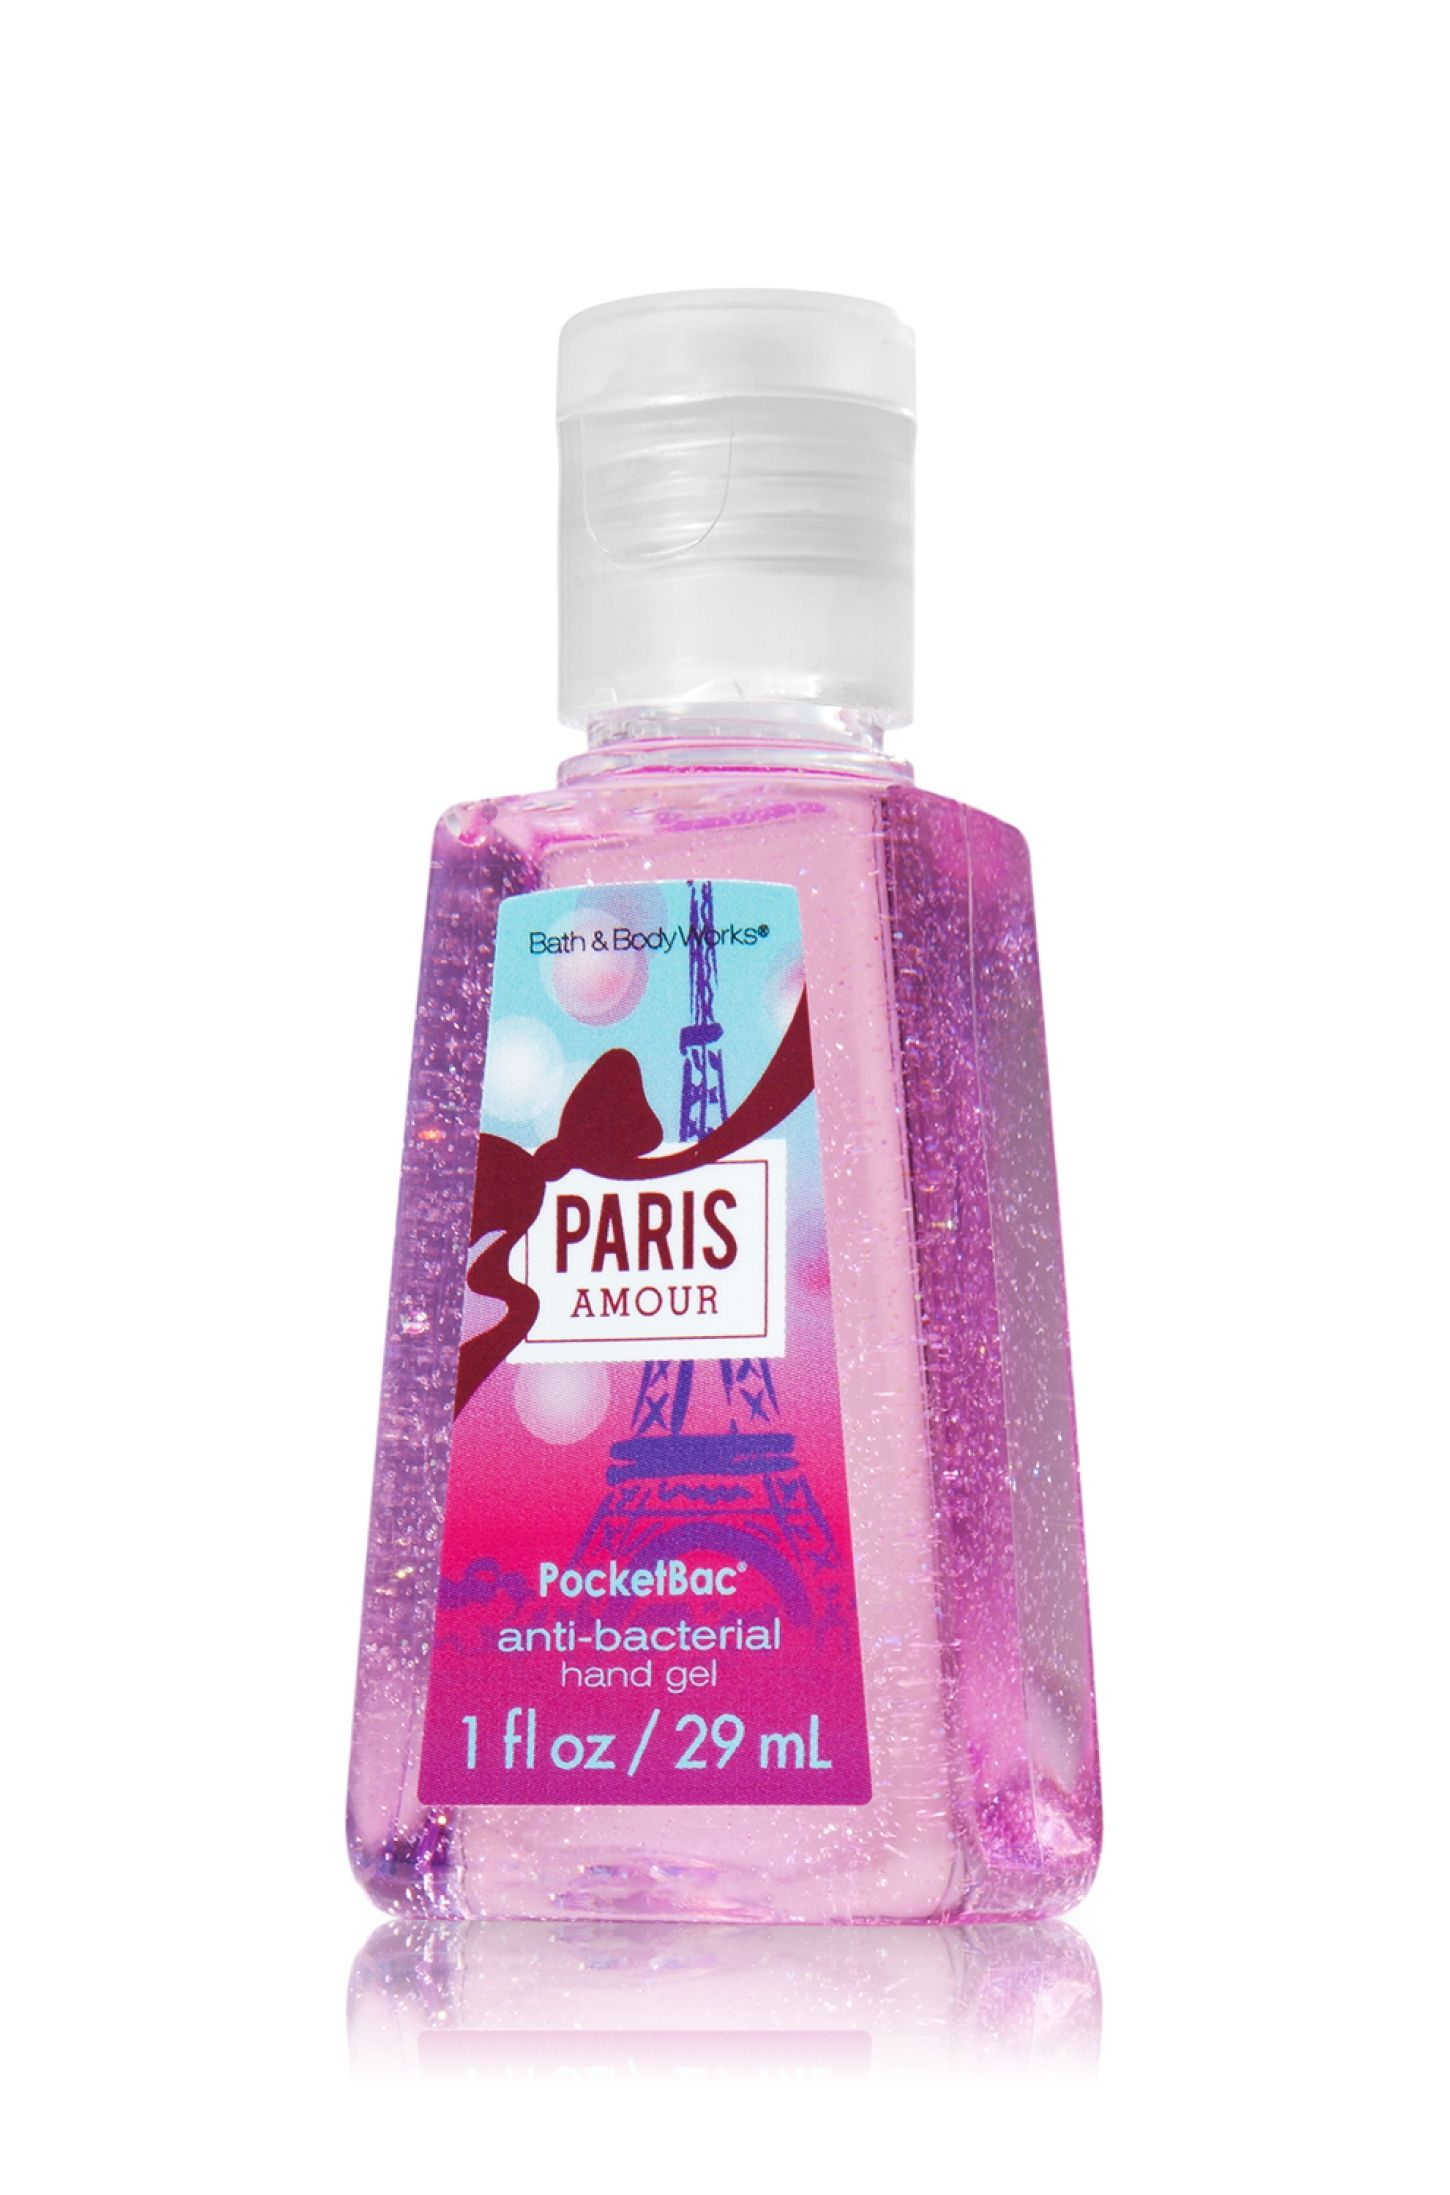 Paris Amour Pocketbac Hand Sanitizer Bath And Body Works Love